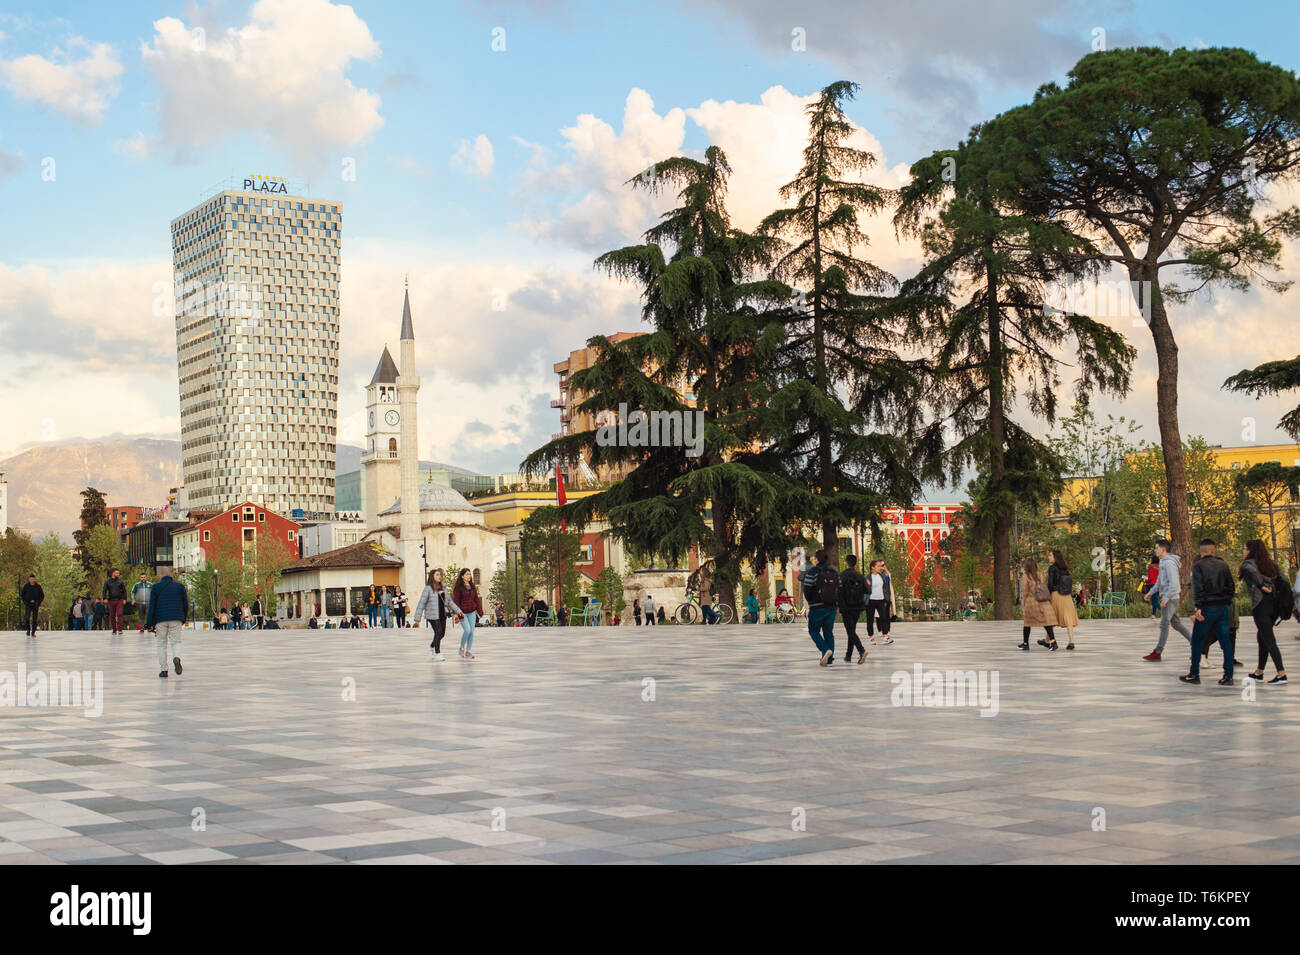 The Skanderbeg Square is the main plaza in the centre of Tirana - Stock Image